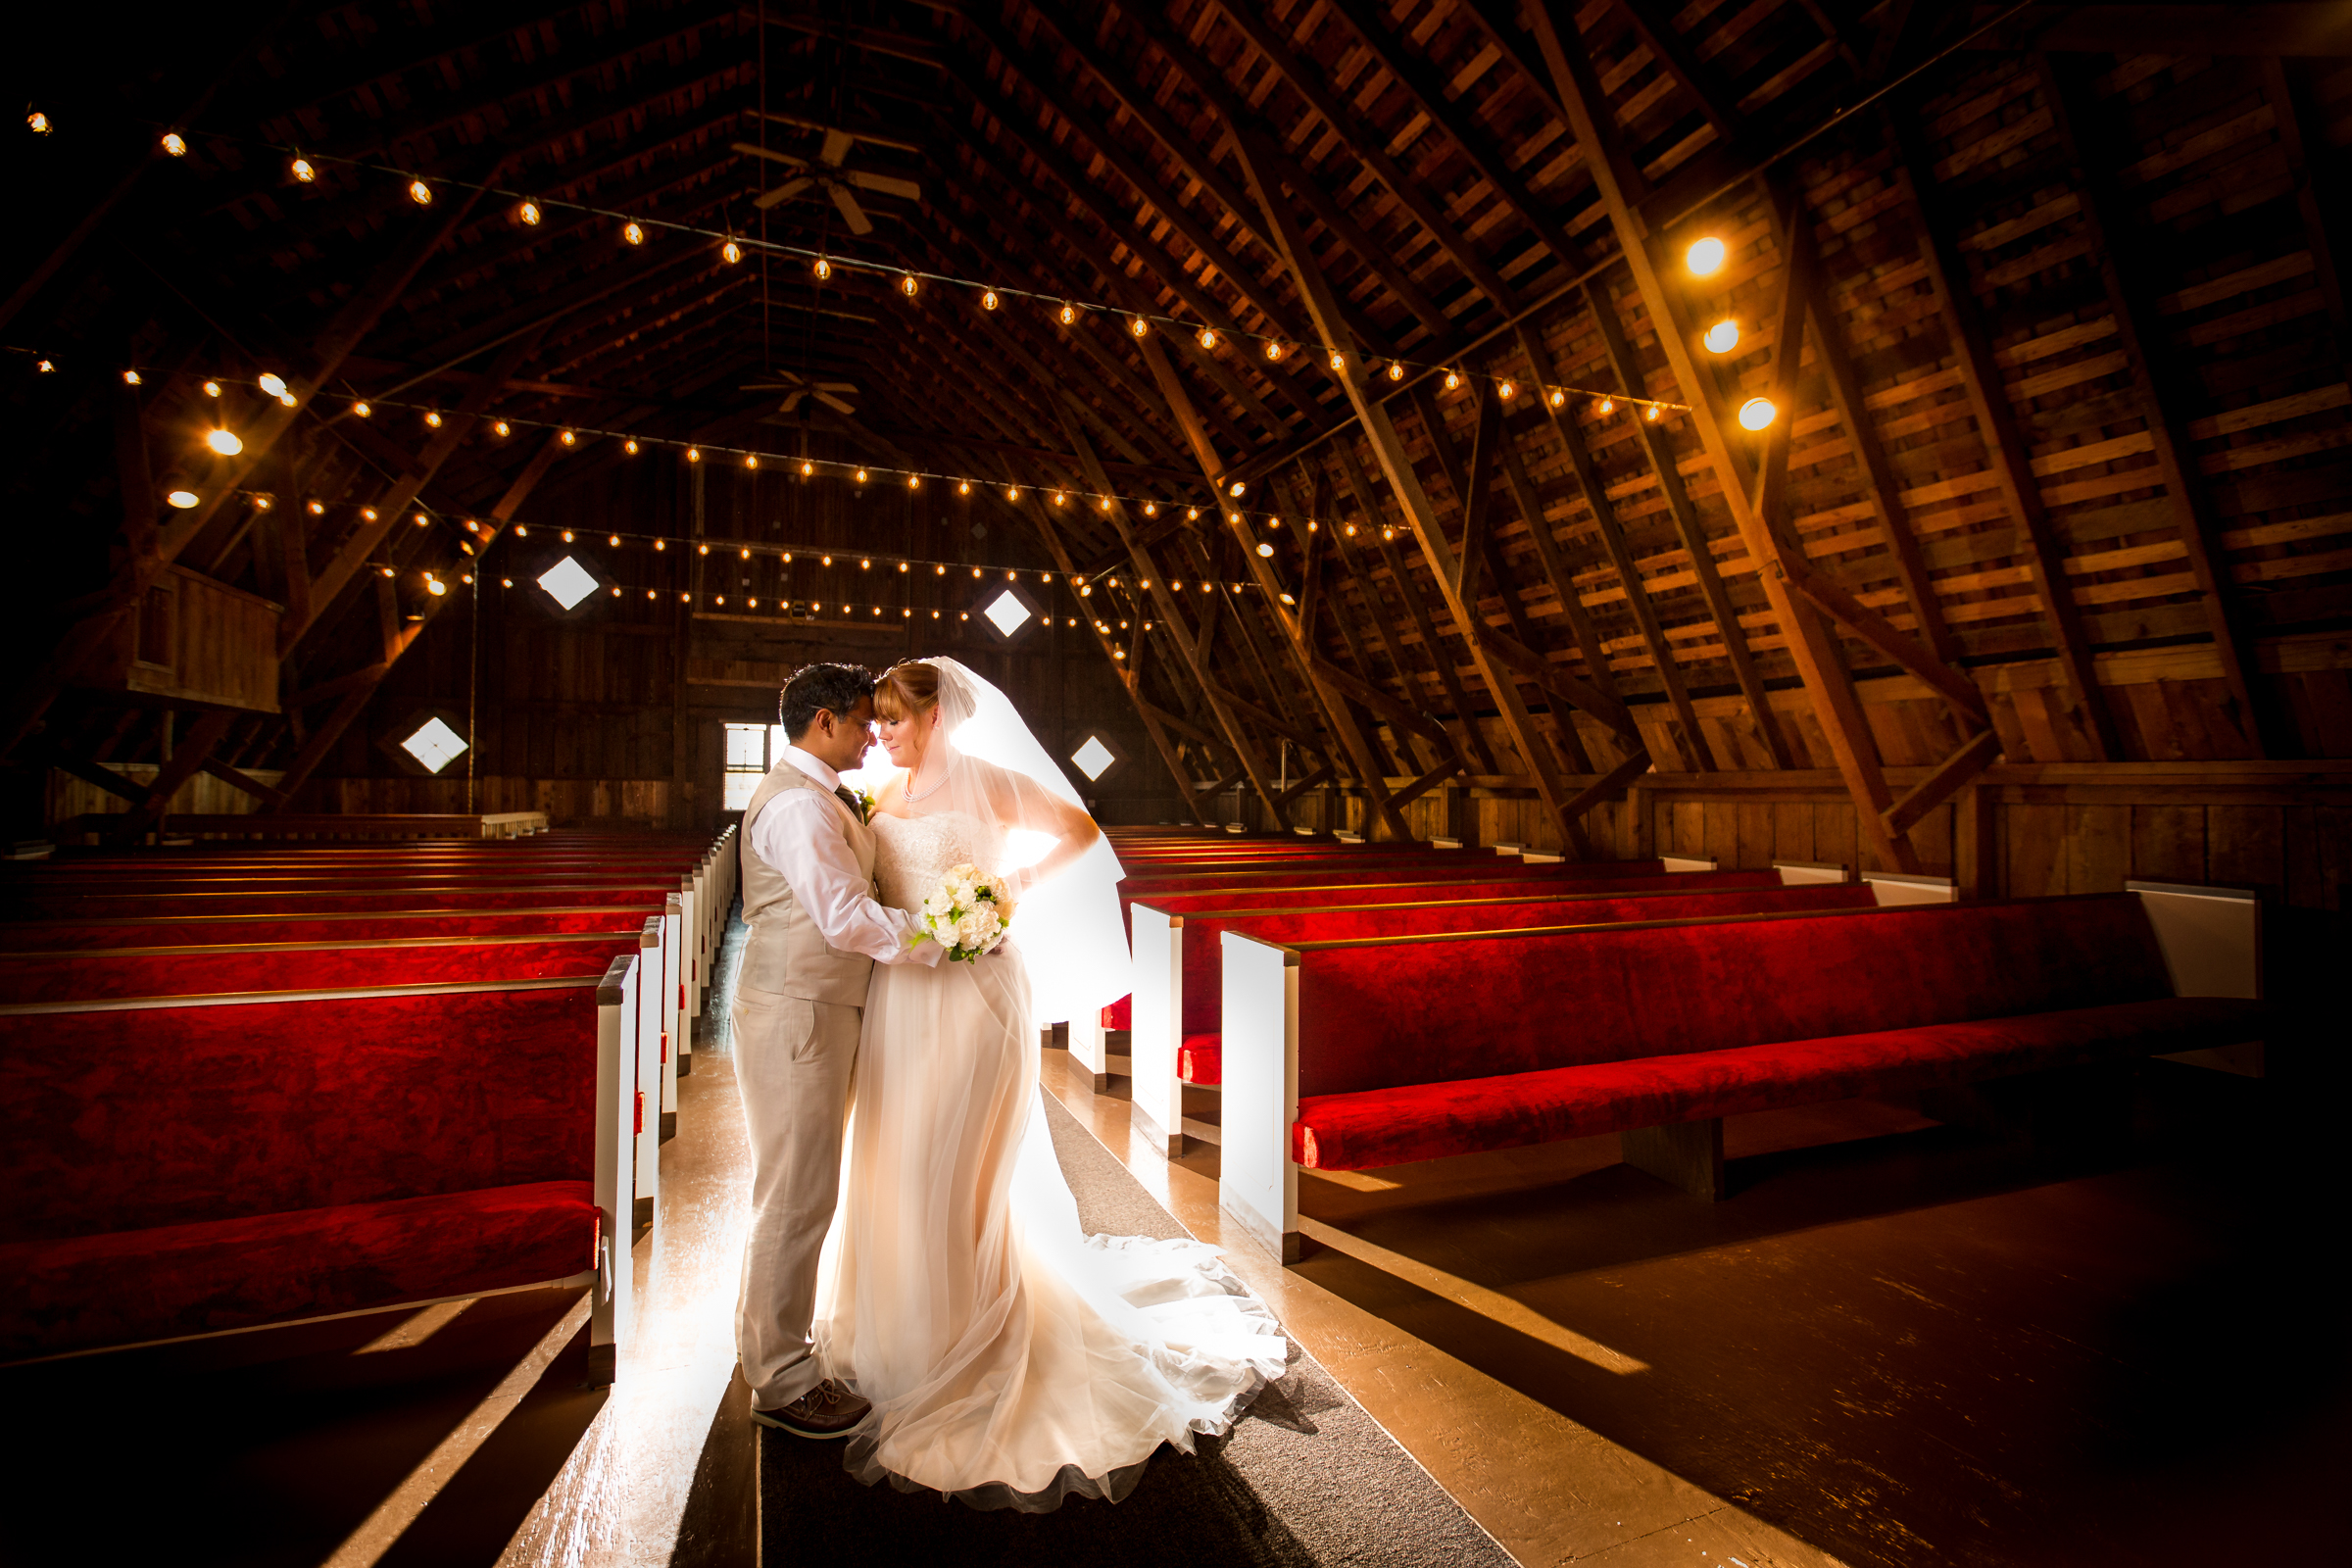 Arlington Washington Wedding, Rustic Barn Chapel at Stilly Brook Farm